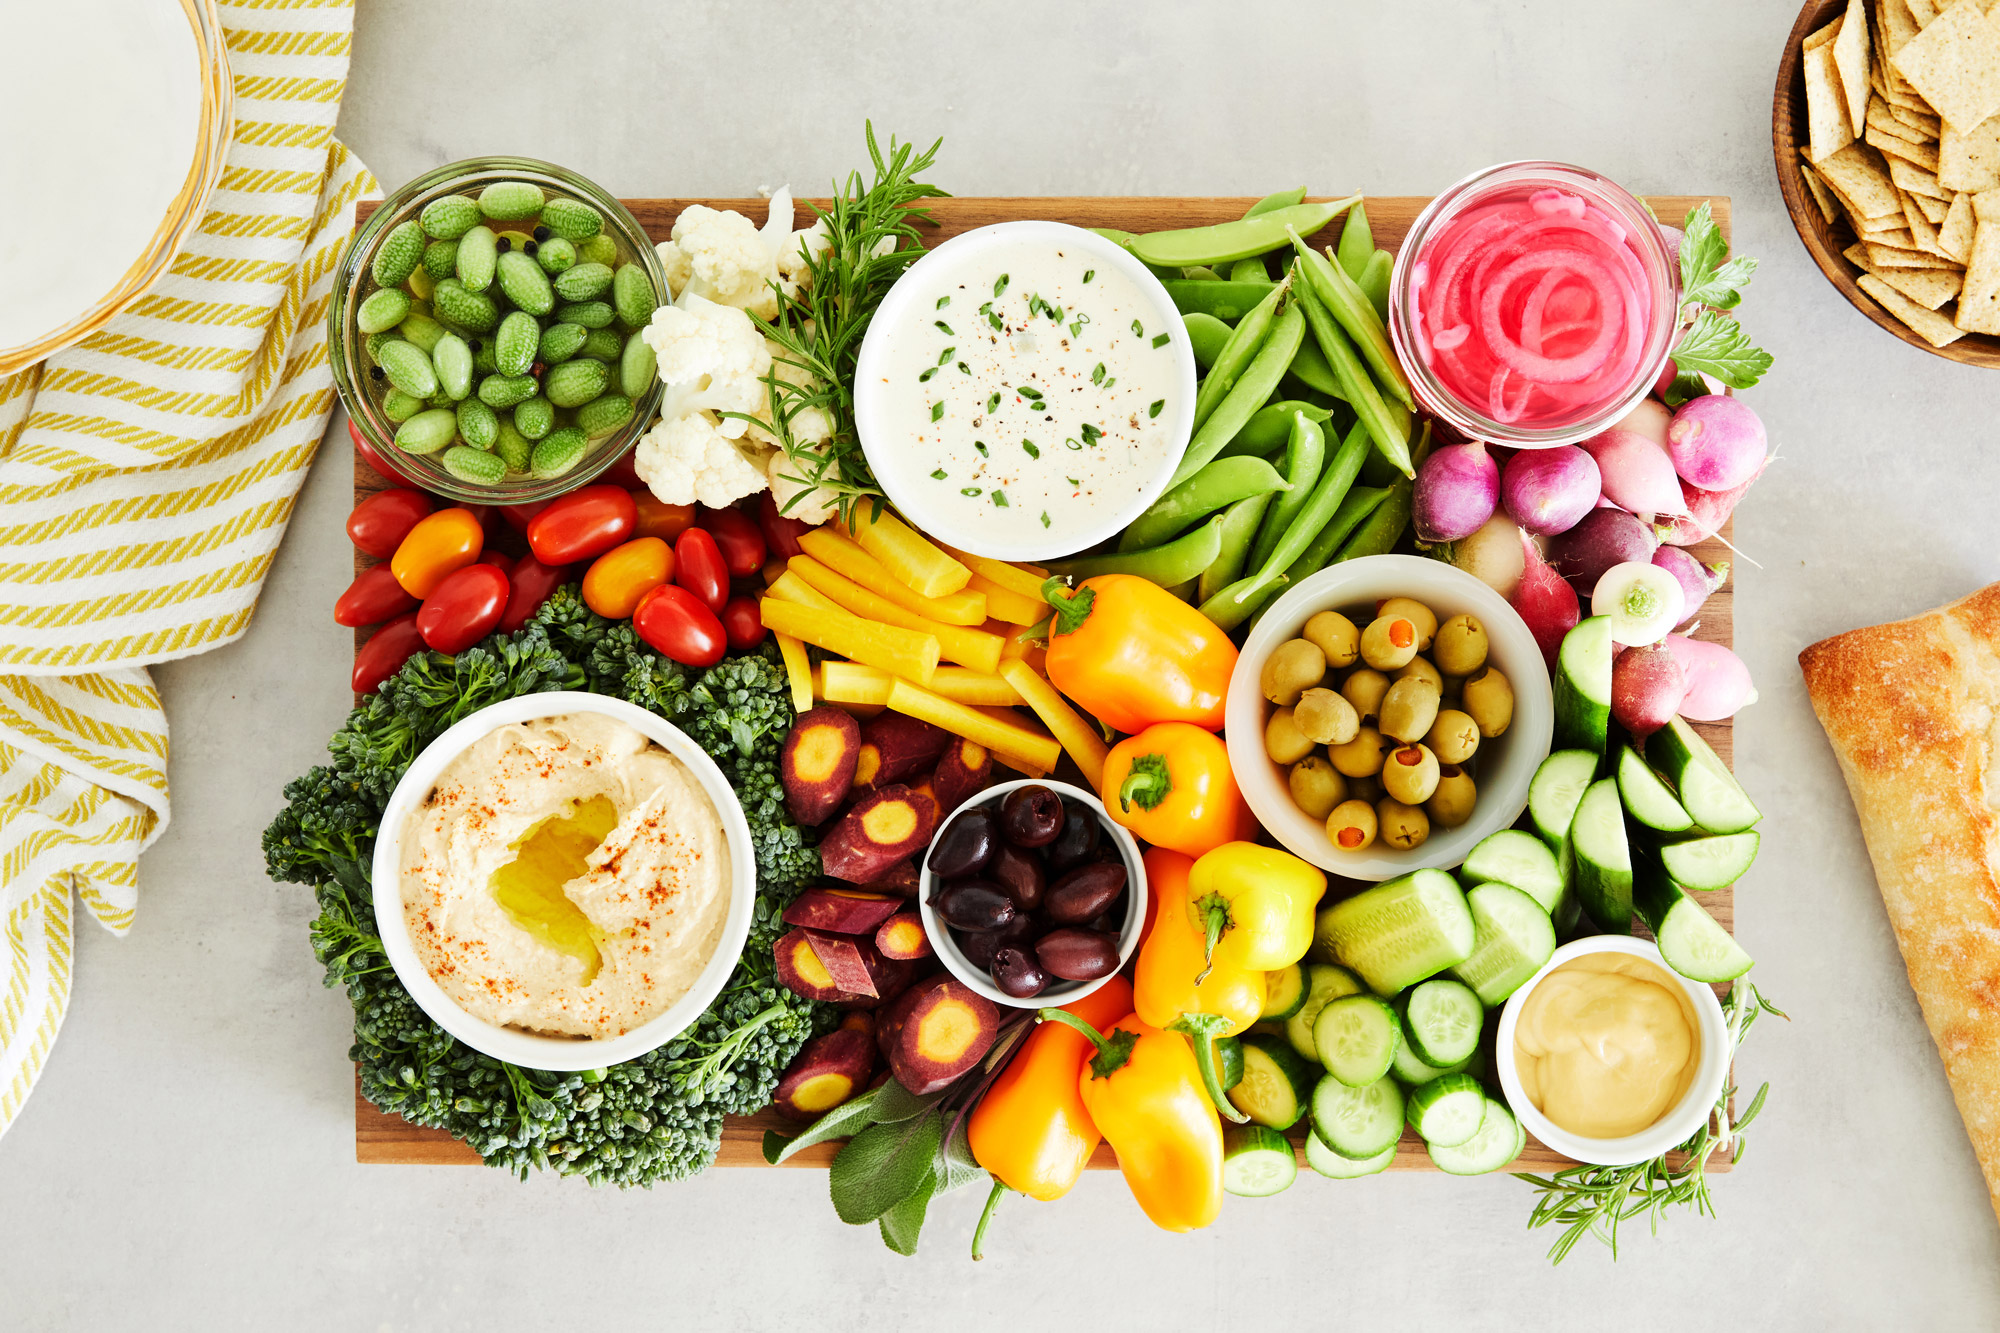 An Epic Crudites And Dips Platter Is The Ultimate Healthy Start Thanksgiving Feast Martha Stewart